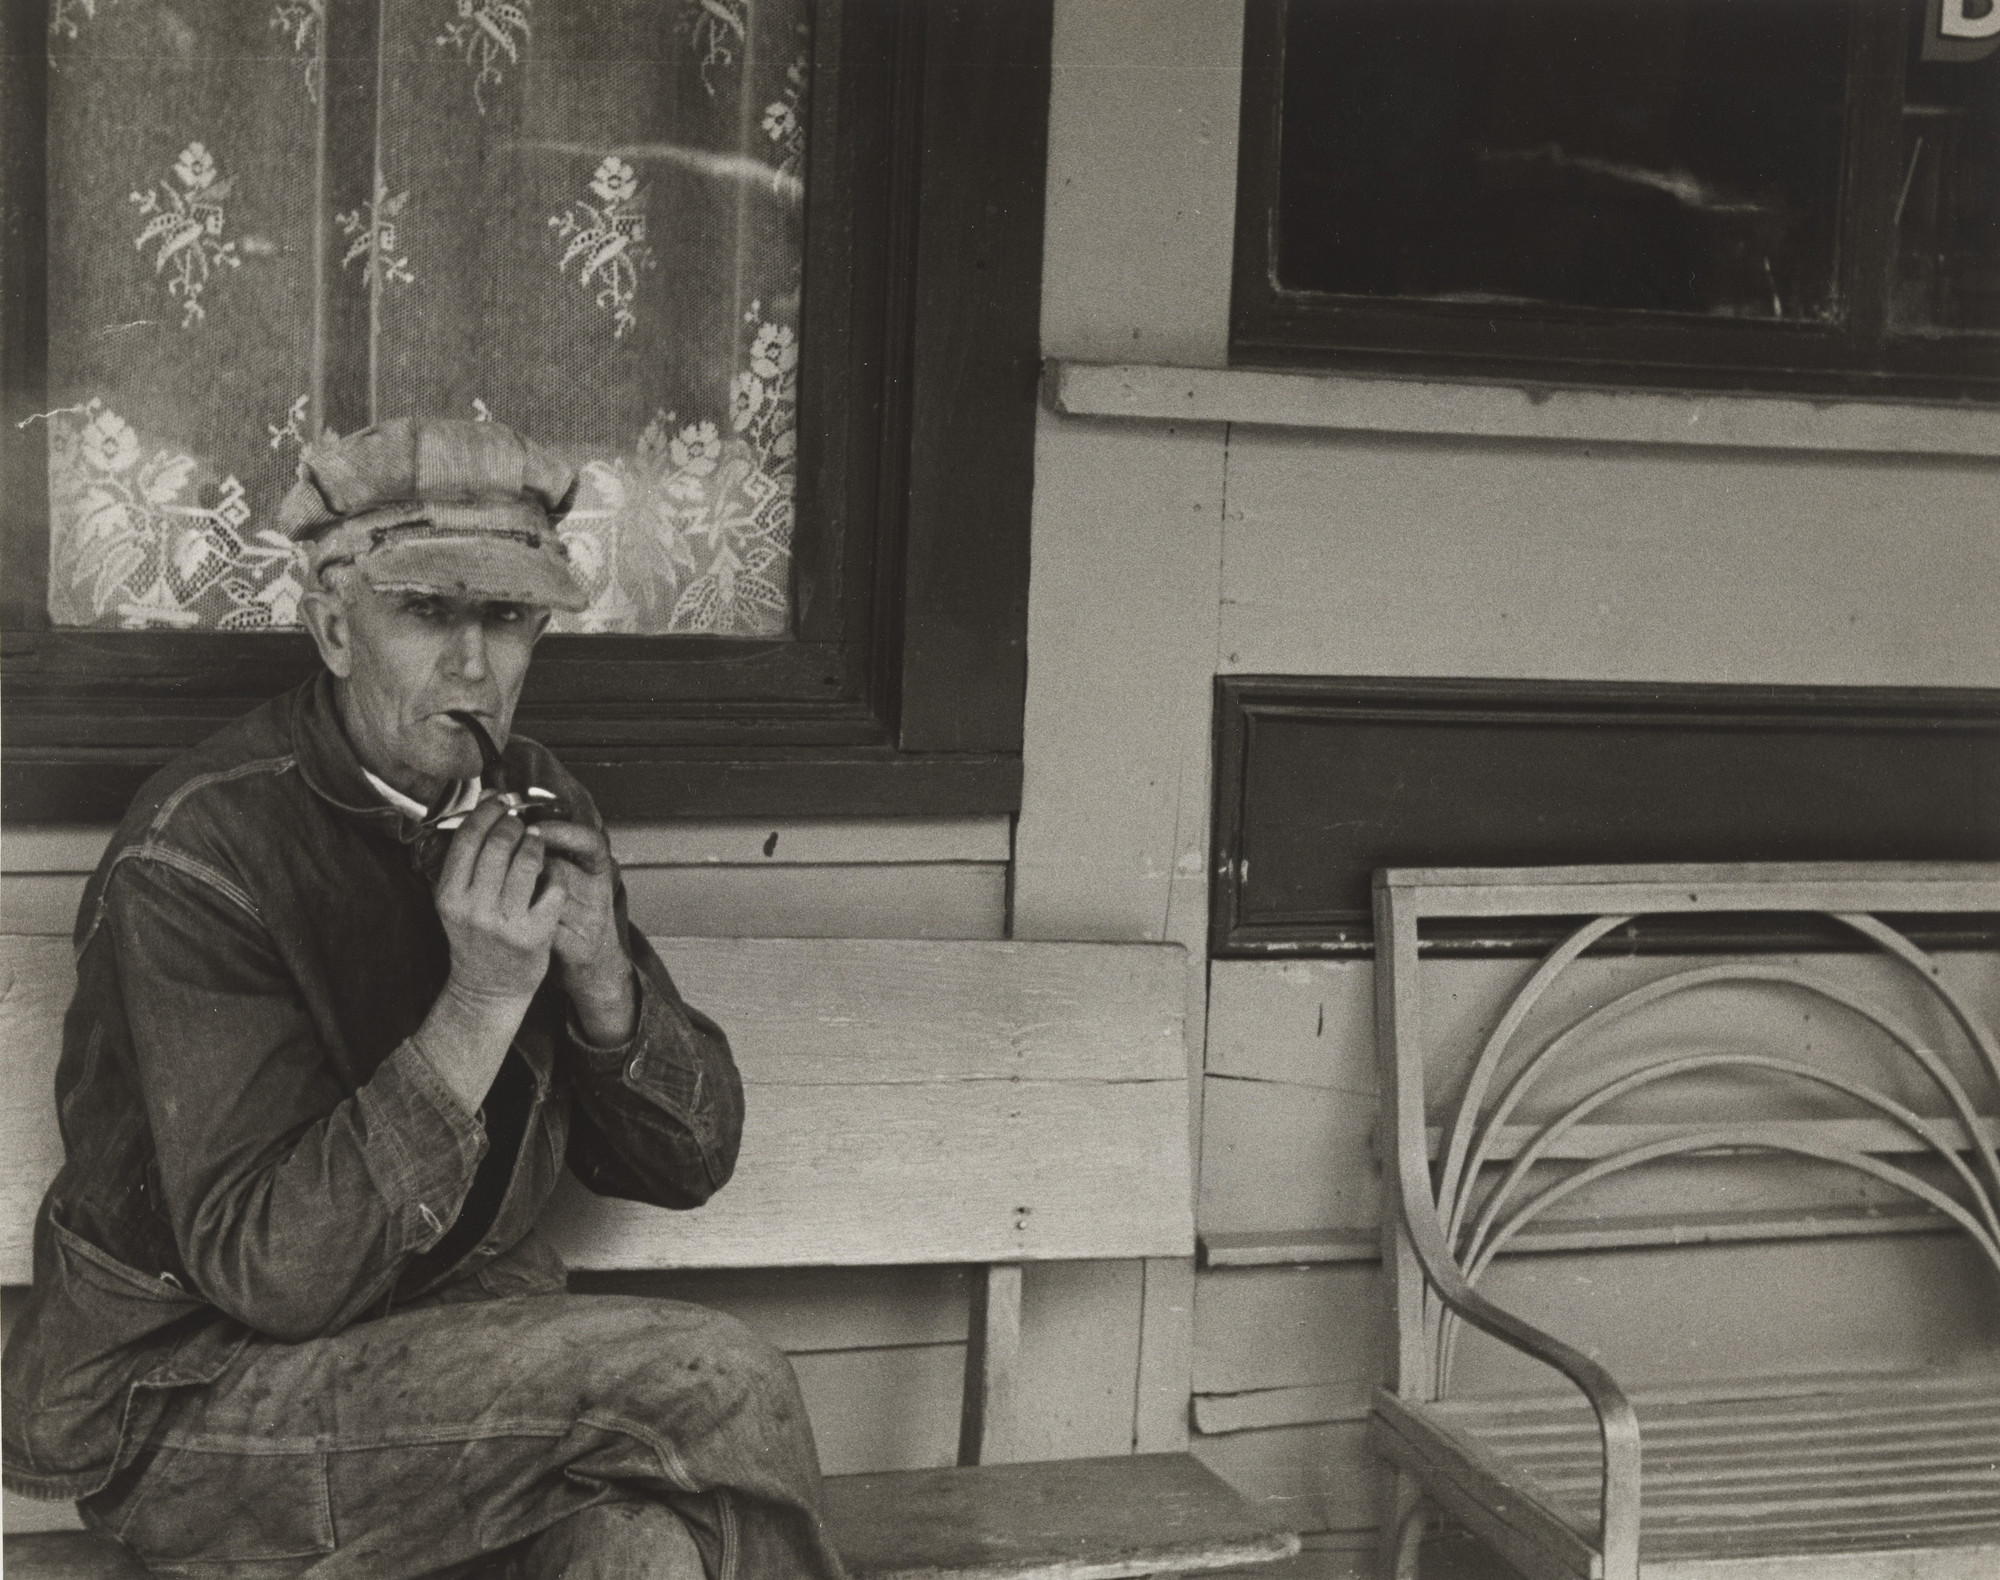 Ben Shahn. Resident of Smithland, KY. September 1935